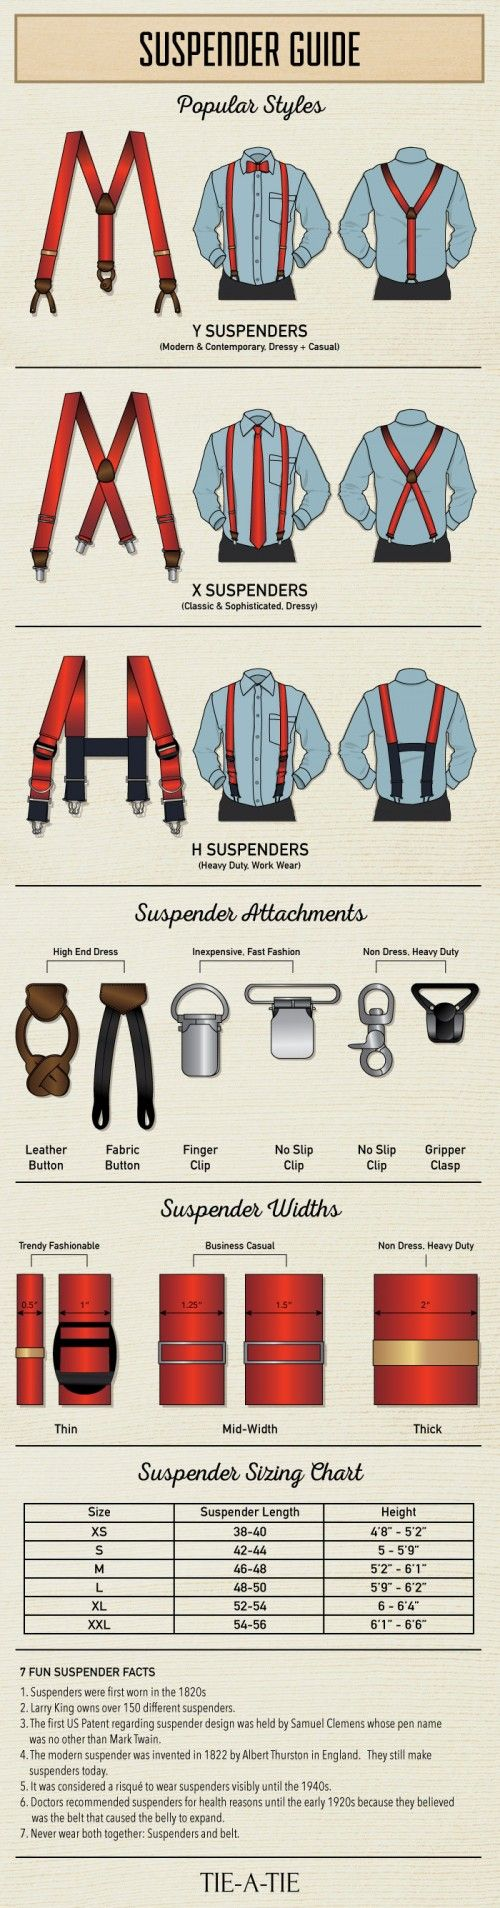 How to properly wear suspenders